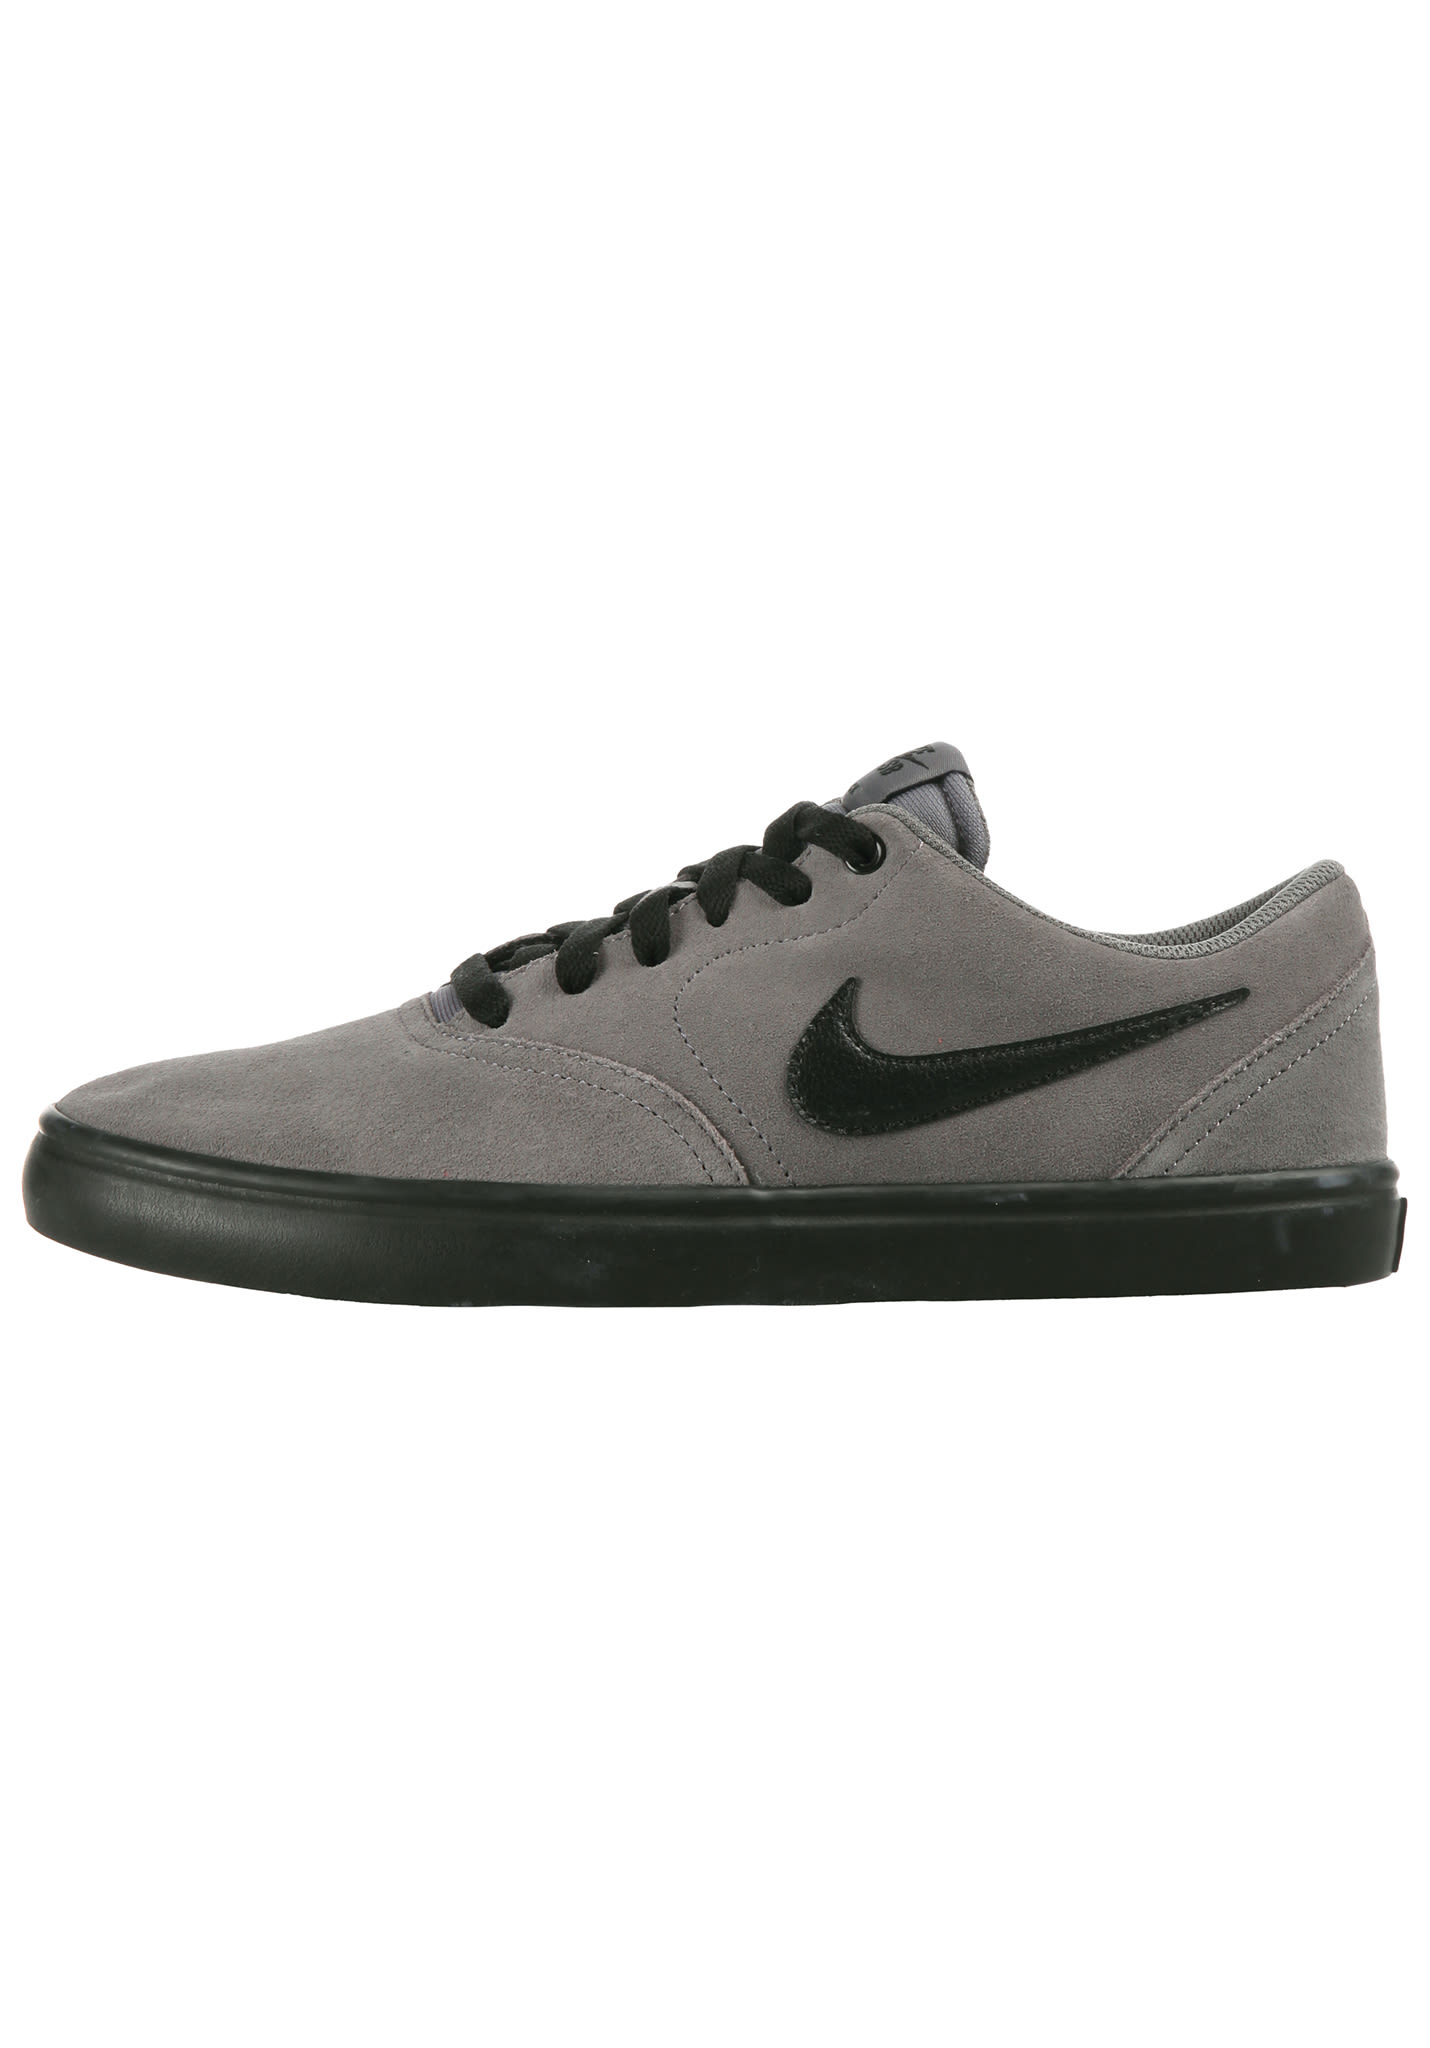 cdb00886df78d NIKE SB Check Solar - Sneakers for Men - Grey